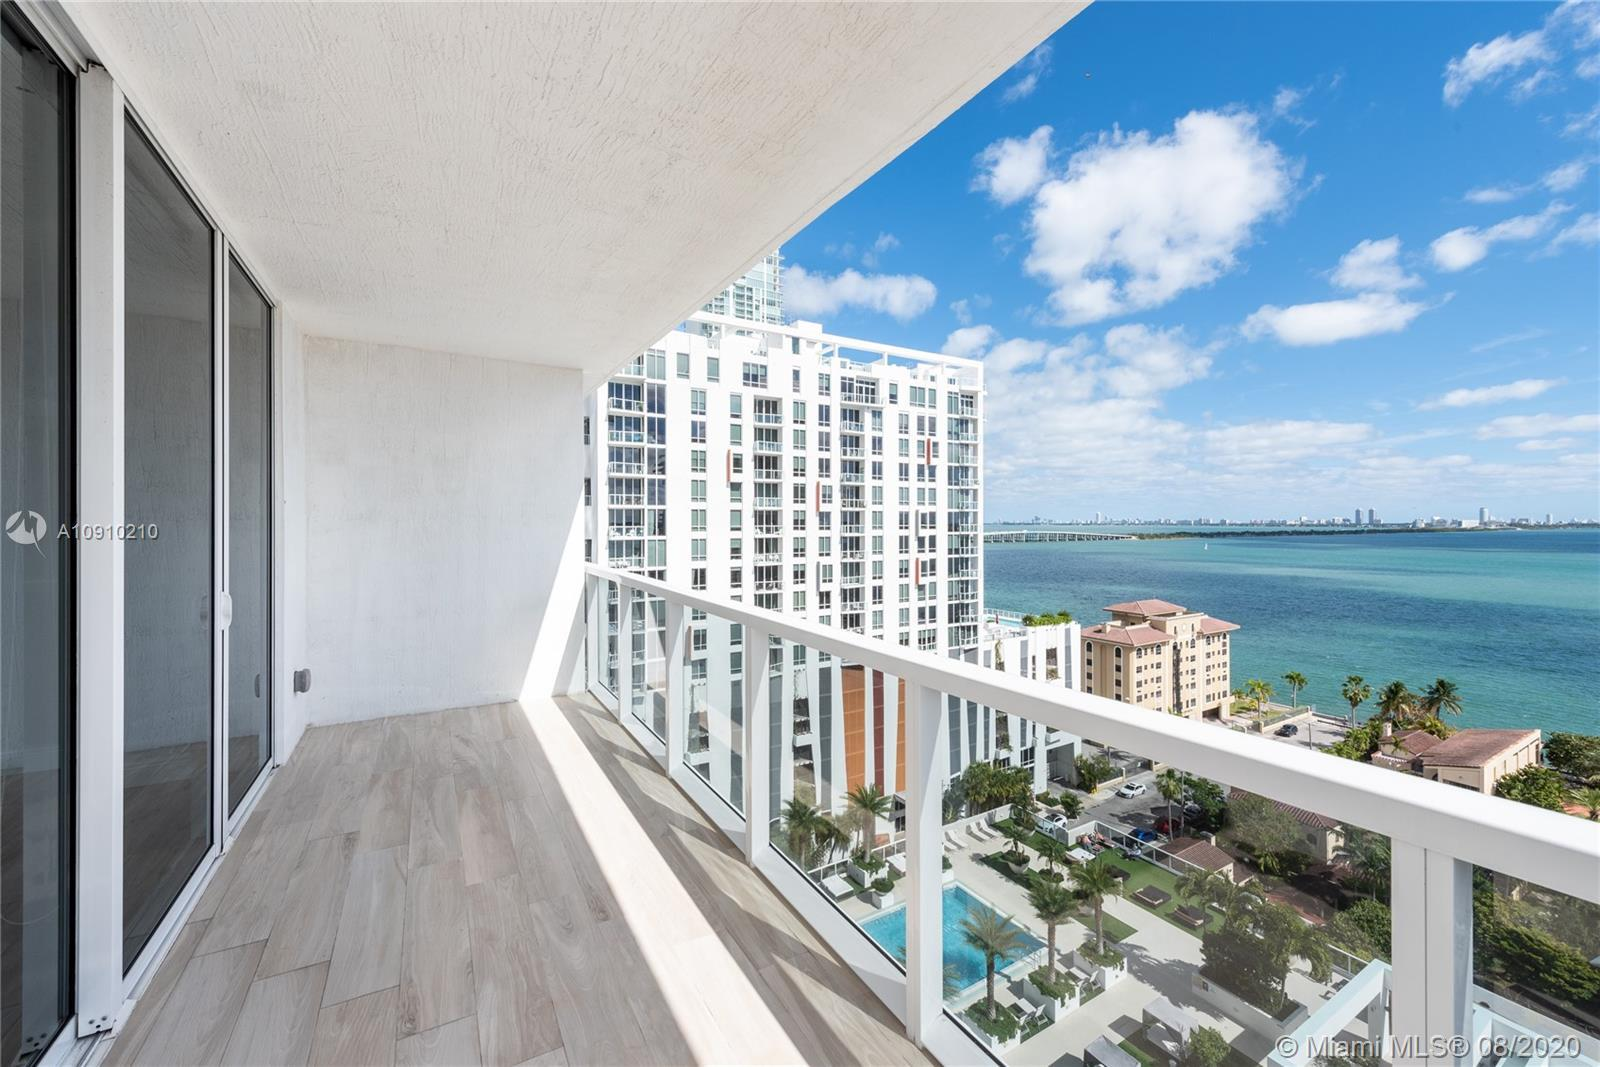 Amazing South East Corner 3 Bedroom/2.5 Bath , 1,505 SF unit in one of the most prestigious lines in